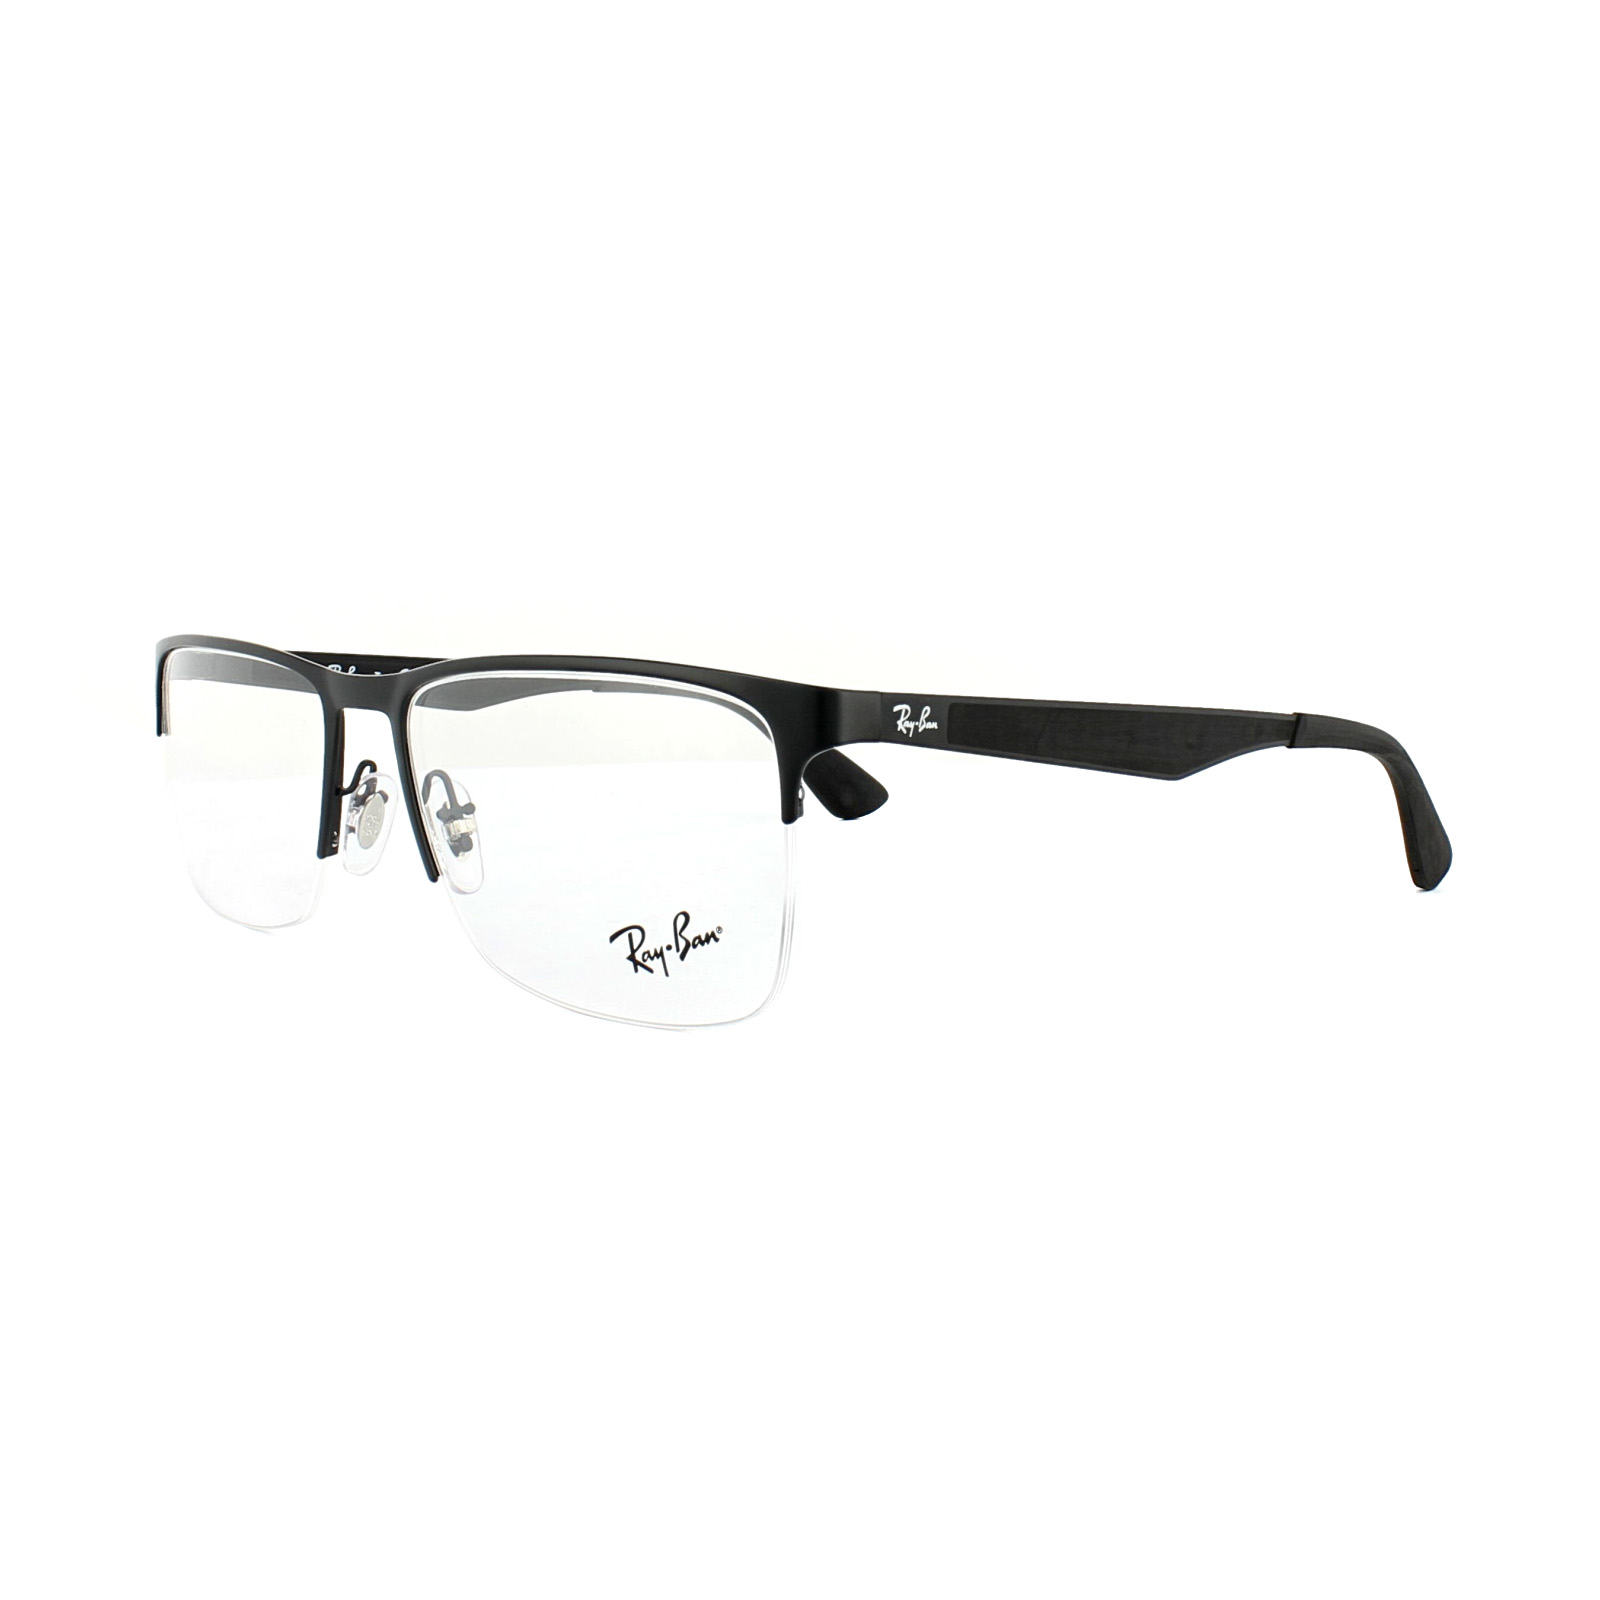 1b0ff2d55a discount code for ray ban glasses 6335 uses c3120 10f3d